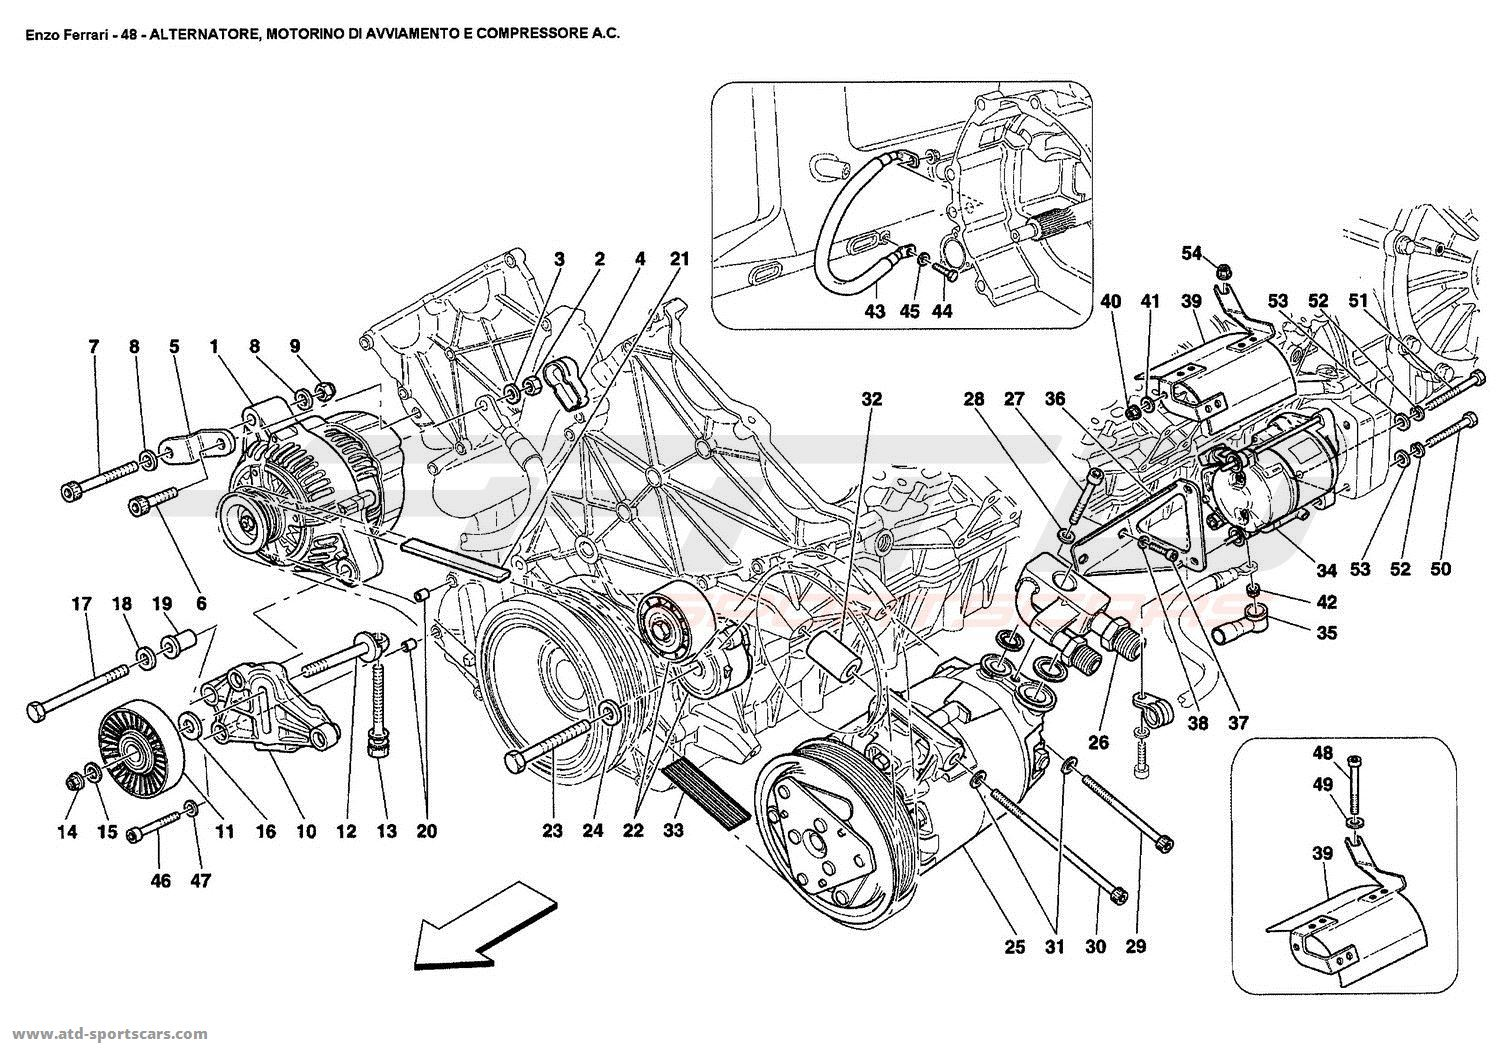 Thermo King Alternator Wiring Diagram Collection